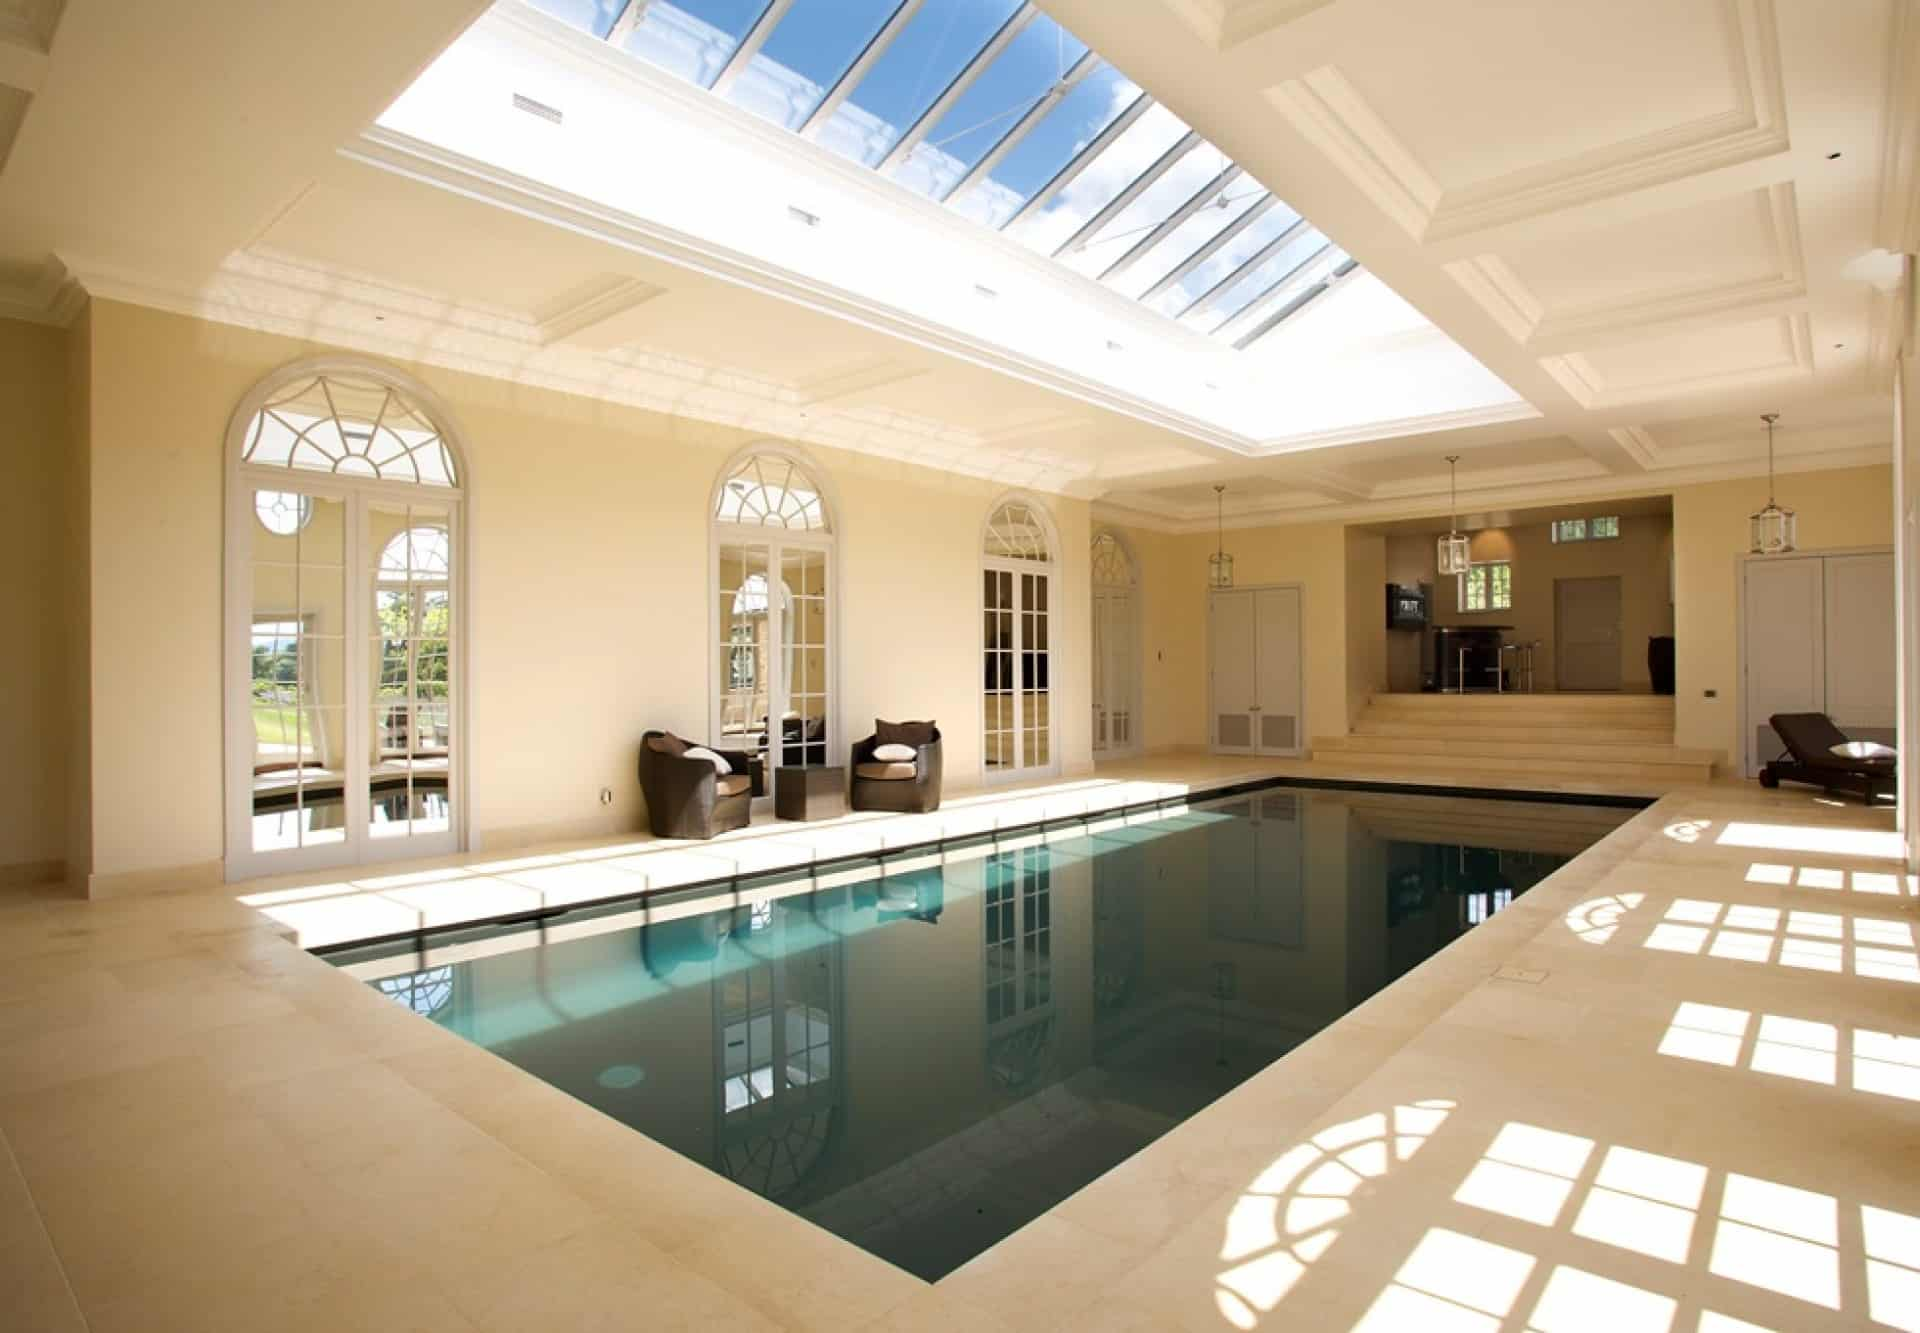 Exciting Transparent Skylight Combined with Cool Indoor Swimming Pool and Comfortable Arm Chairs